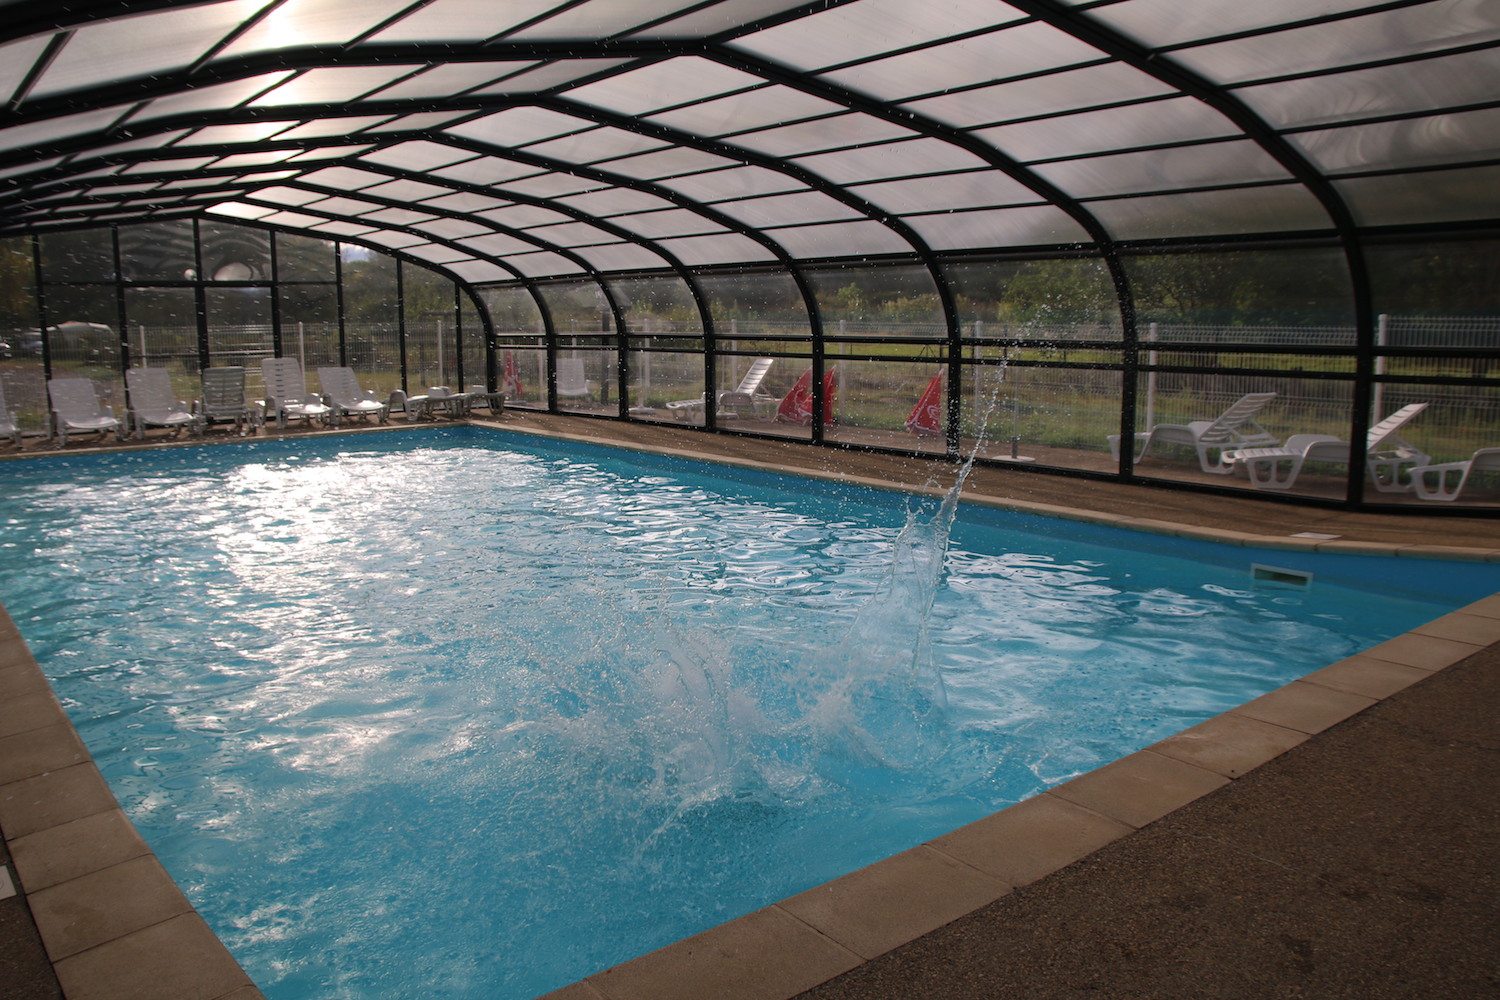 Camping Vichy - Camping Auvergne - Camping Vichy tout Piscine Les Abrets